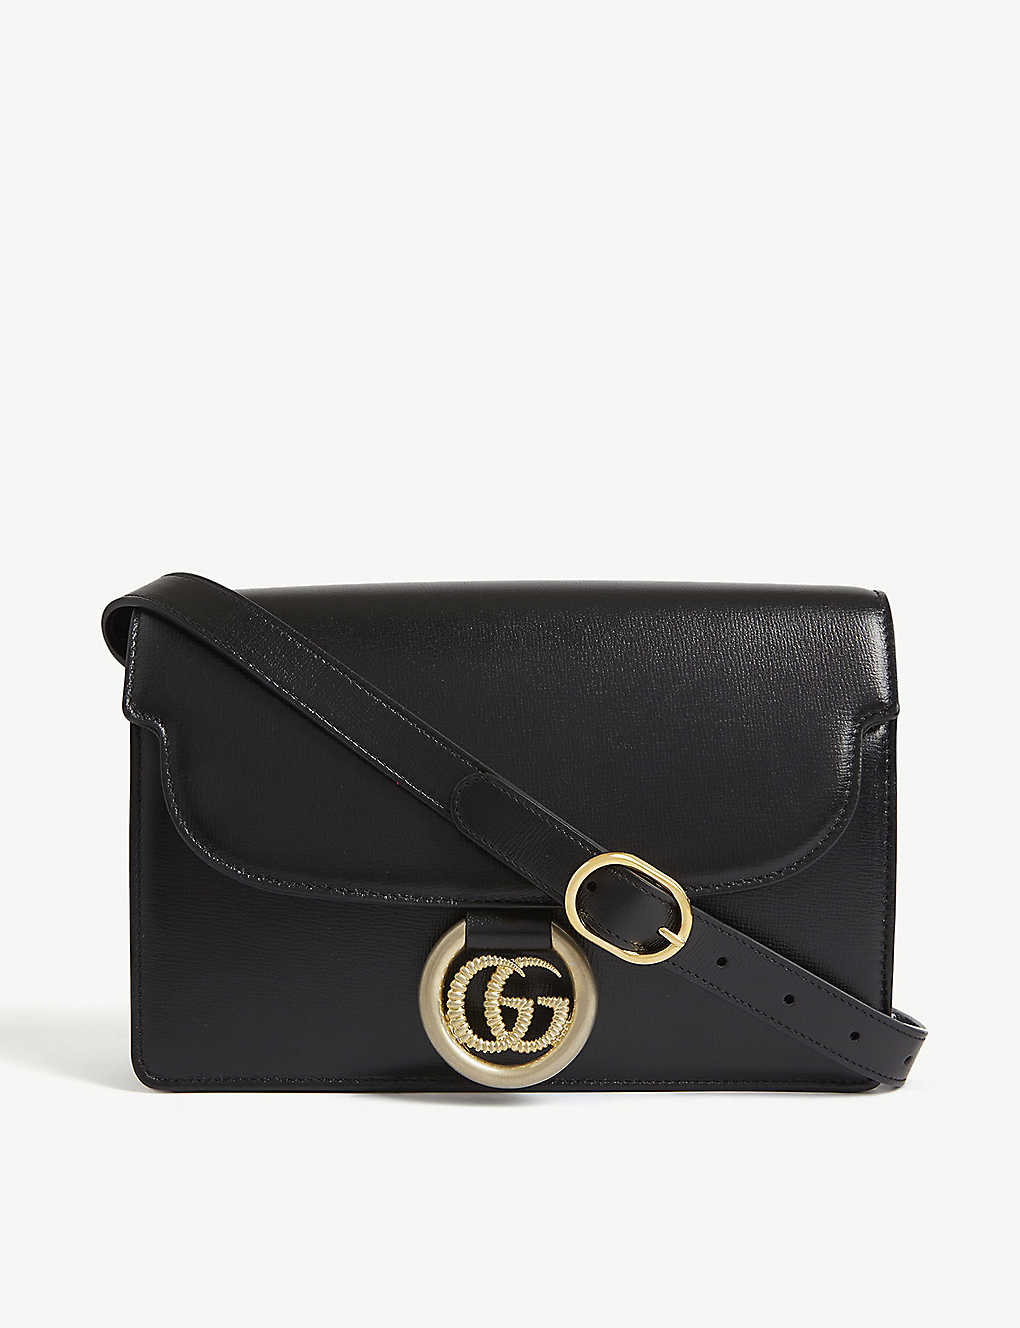 GG logo leather crossbody bag - BLACK